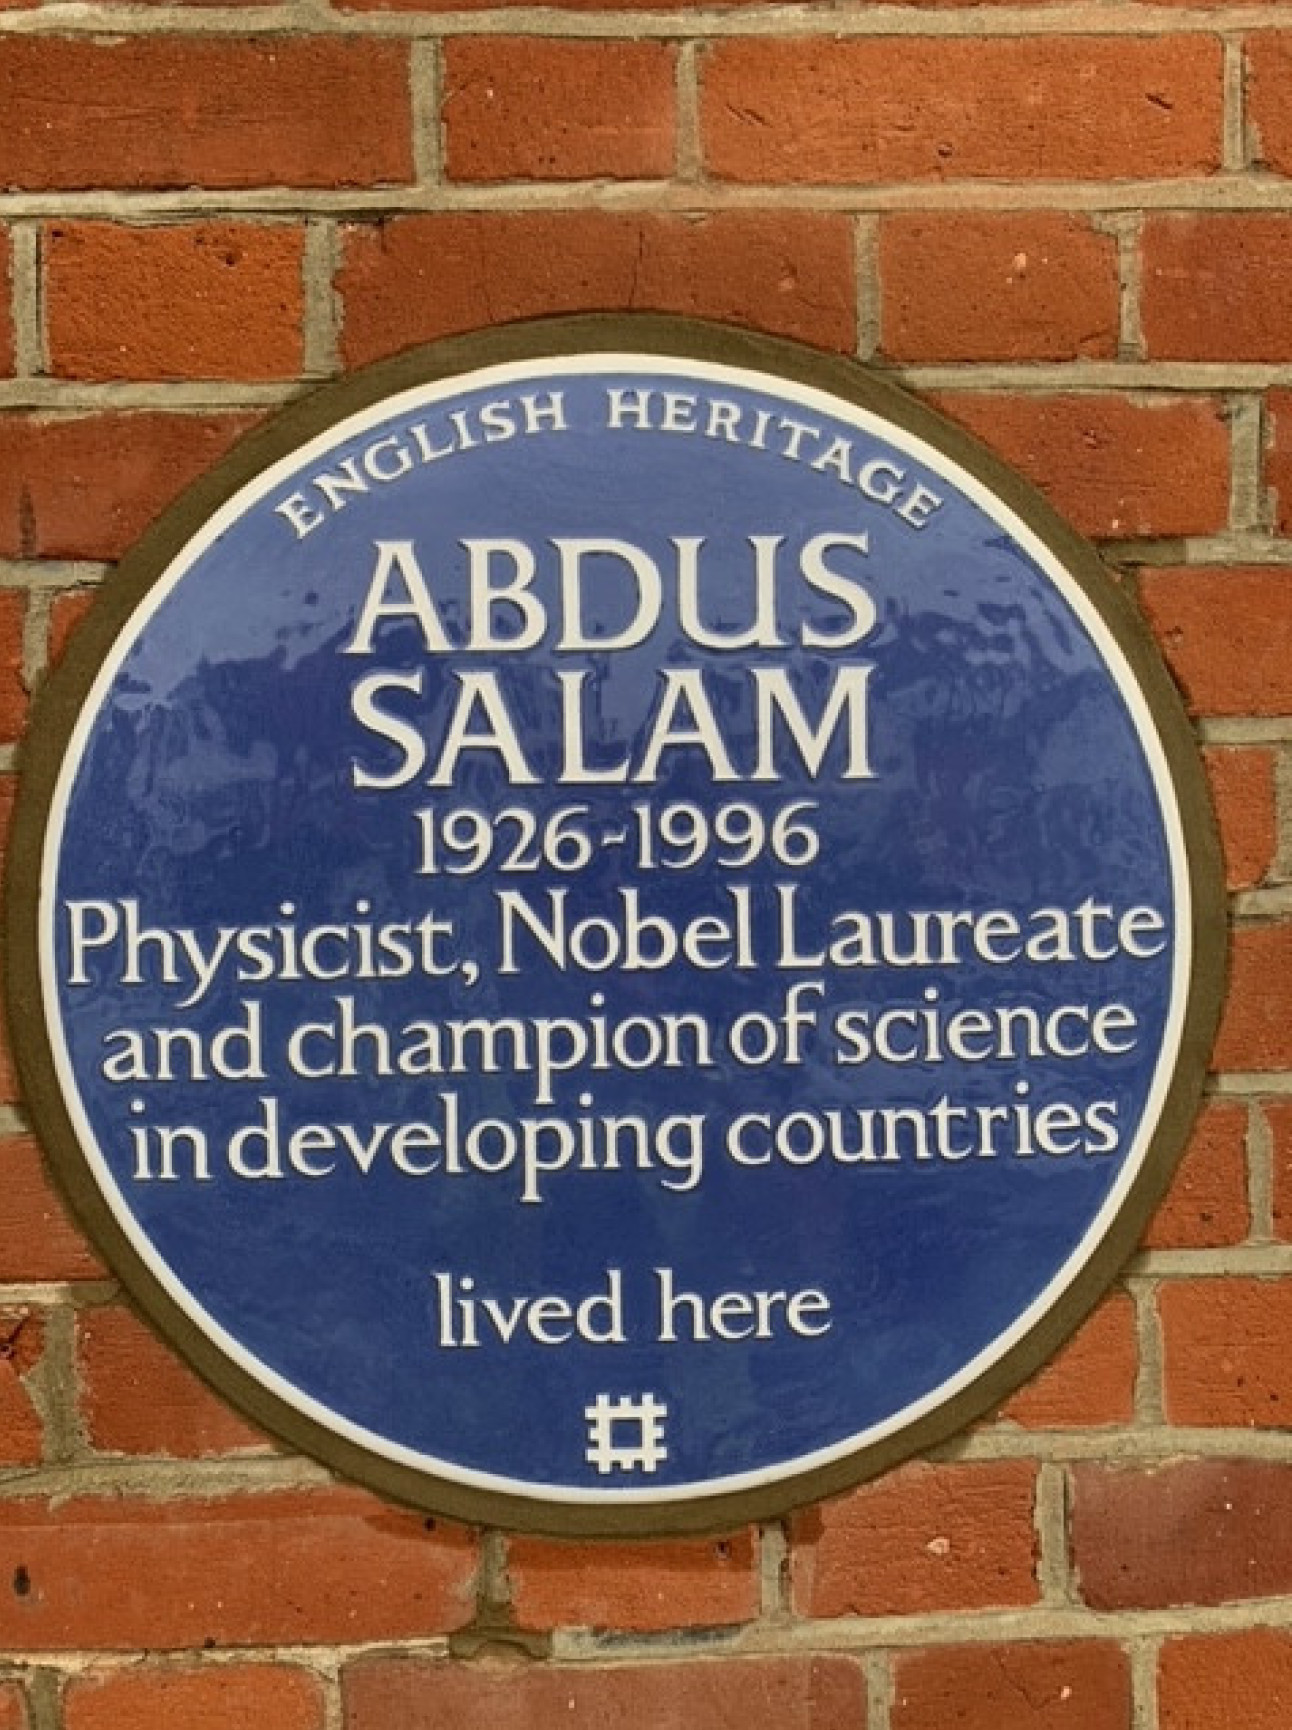 The plaque, which reads: Abdus Salam 1926-1996. Physicist, Nobel Laureate and champion of science in developing countries lived here